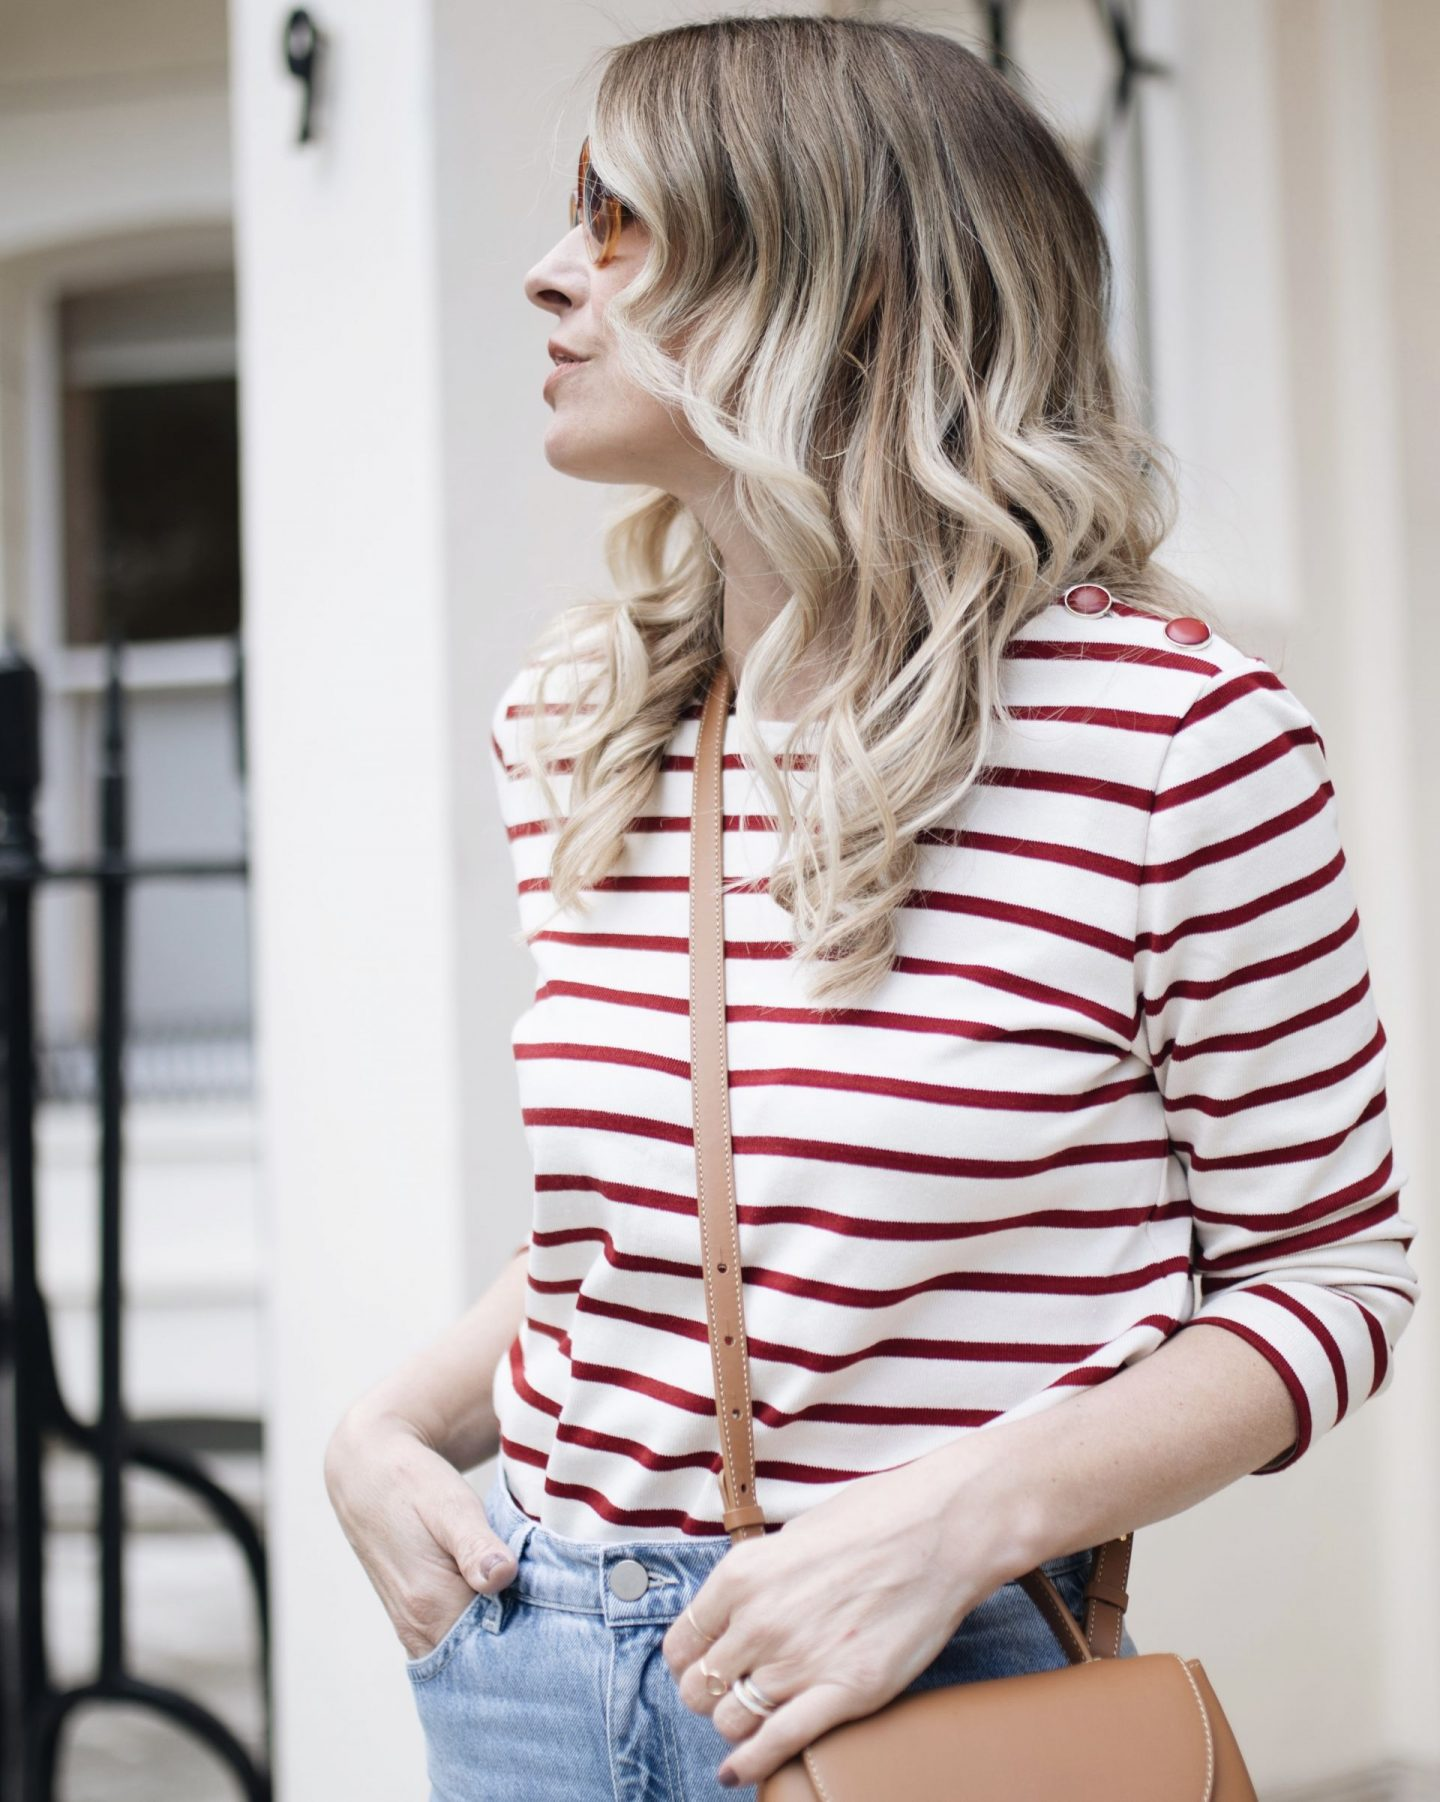 Parisian Style Outfit Ideas | Fashion and Style Edit